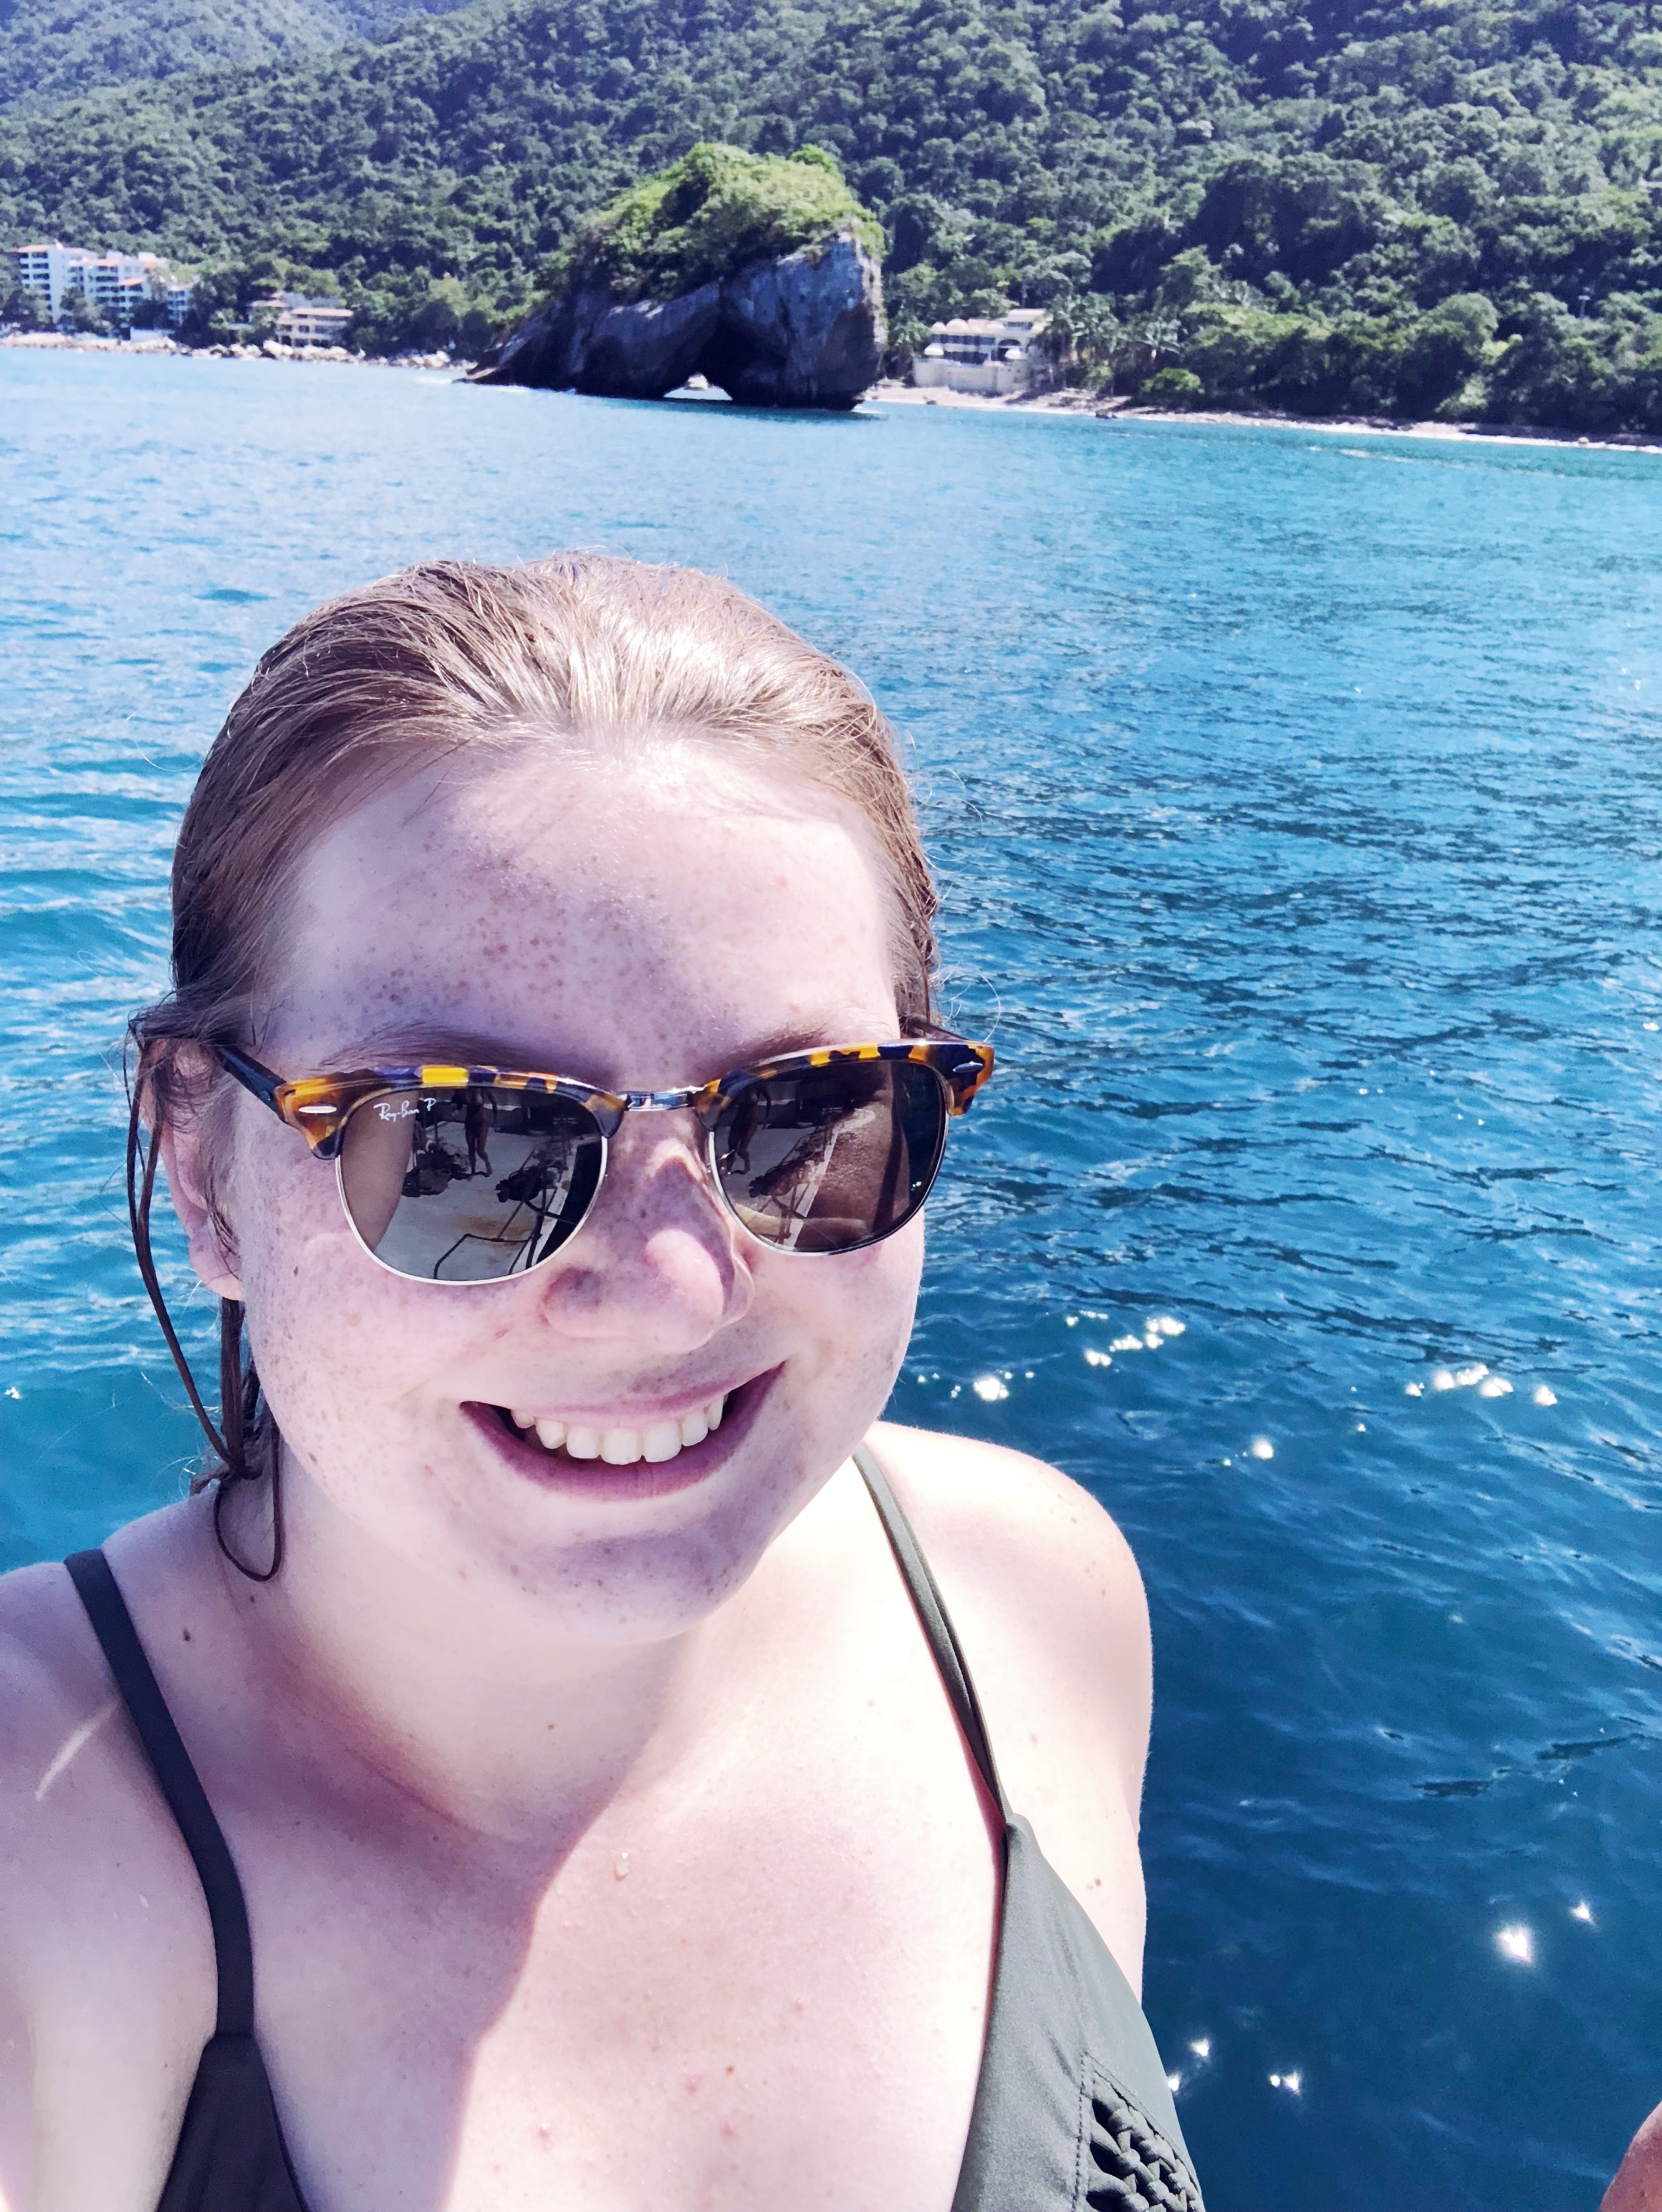 Took a snorkeling trip out to Los Arcos which is just south of Puerto Vallarta.